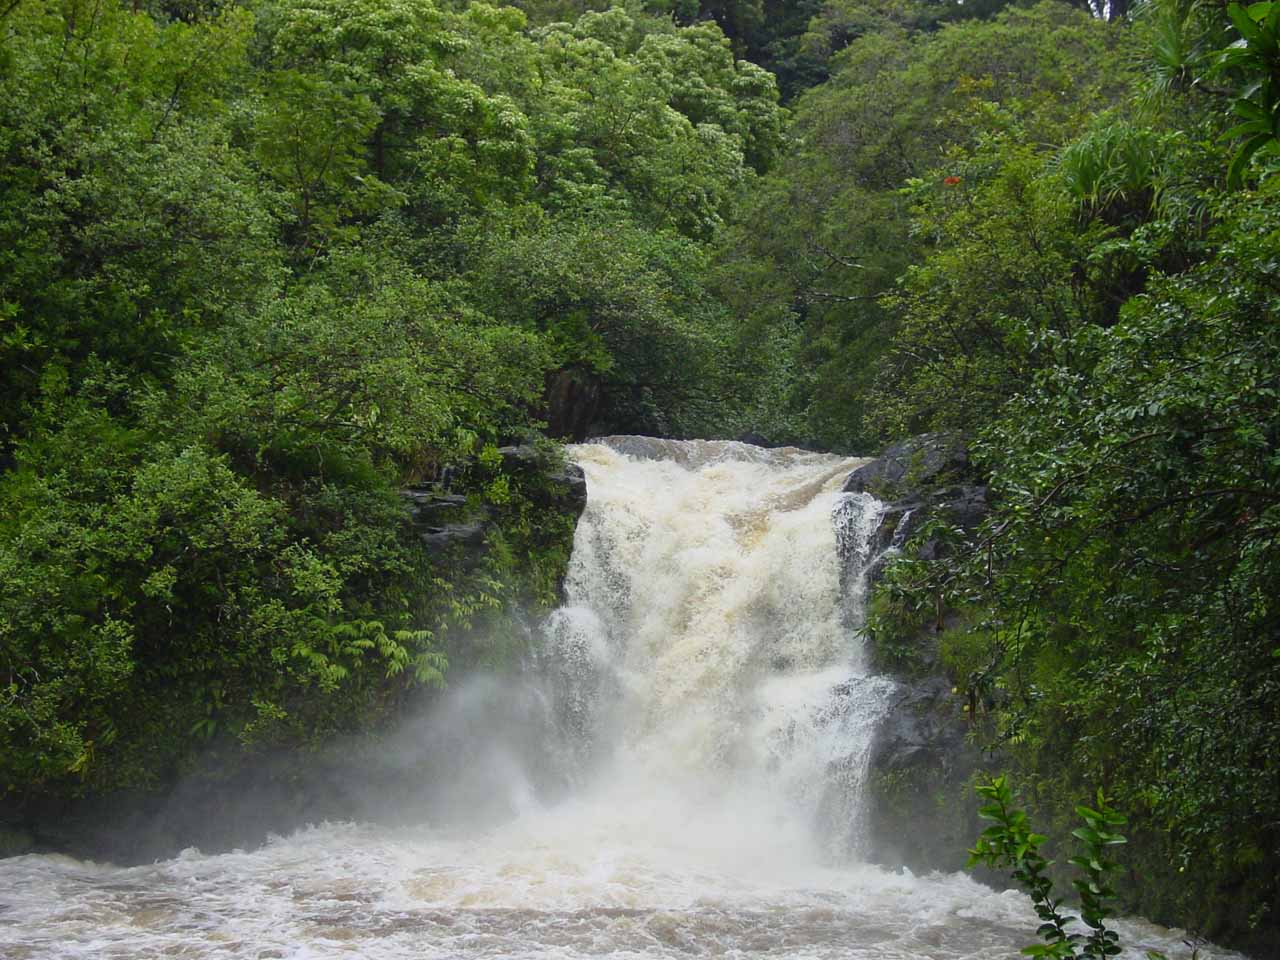 Another look at the Upper Puohokamoa Falls in flood